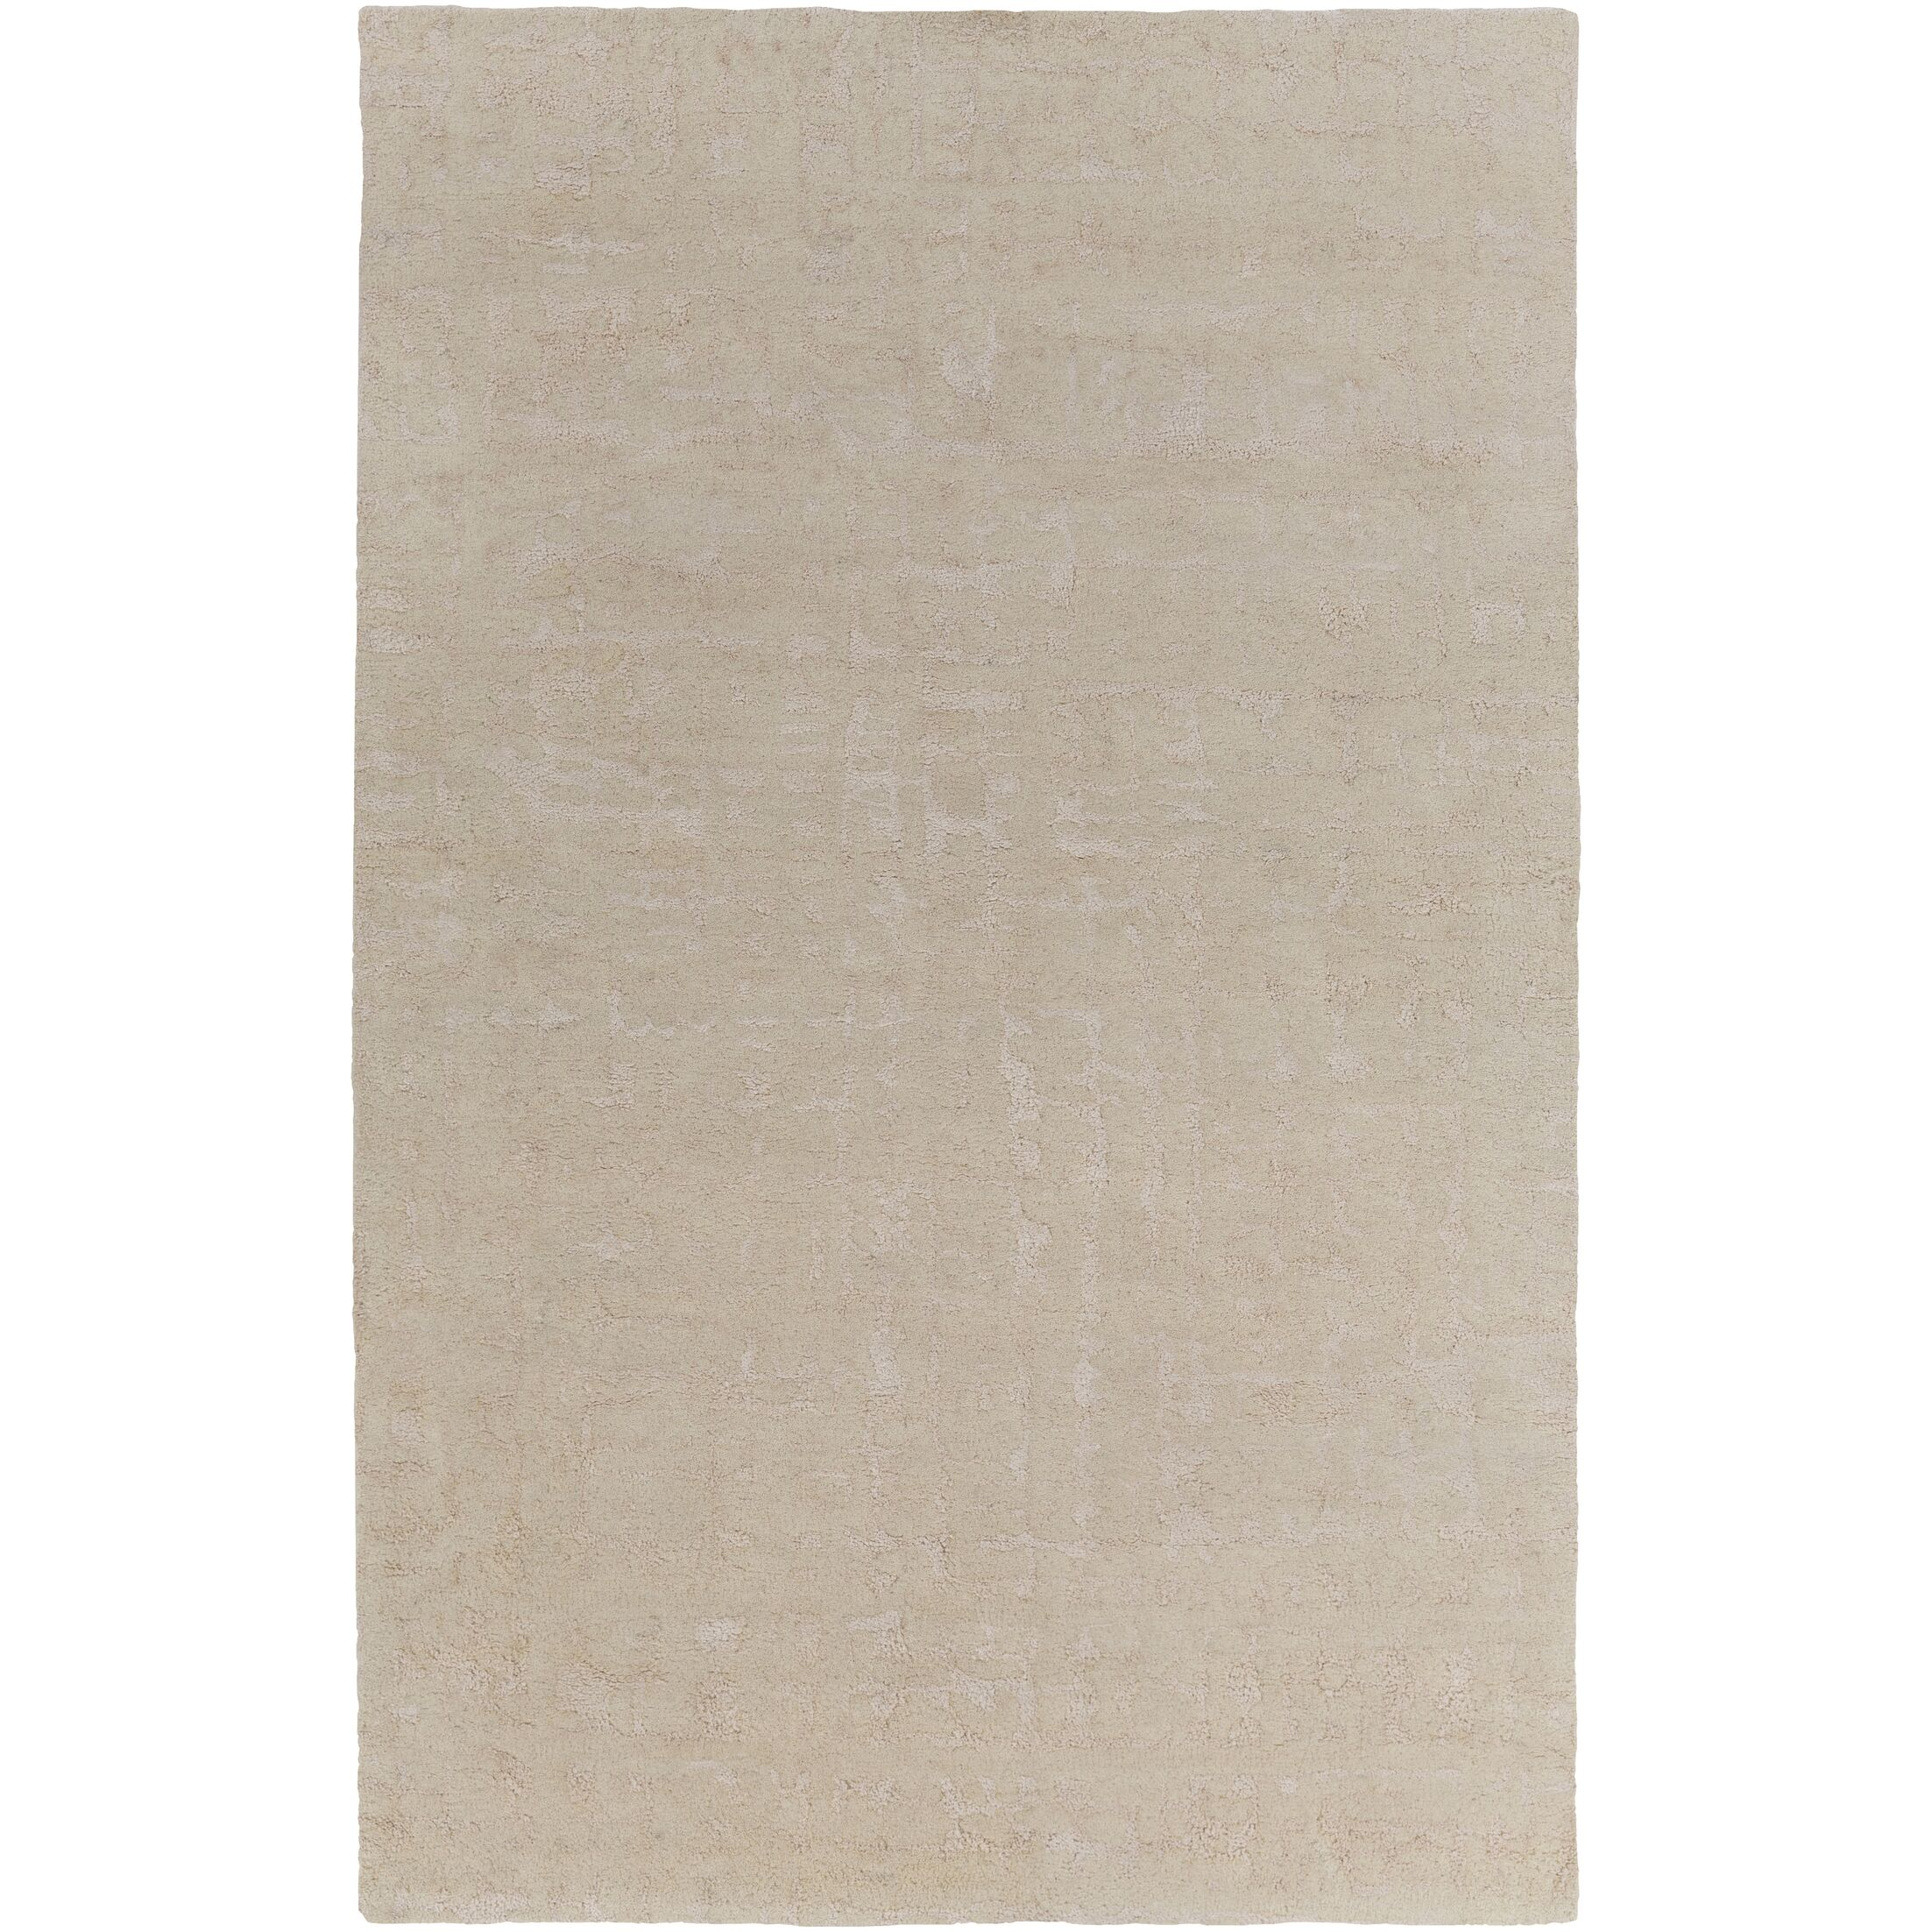 Donnellson Hand-Tufted Cream/Wheat Area Rug Rug Size: Rectangle 5' x 8'